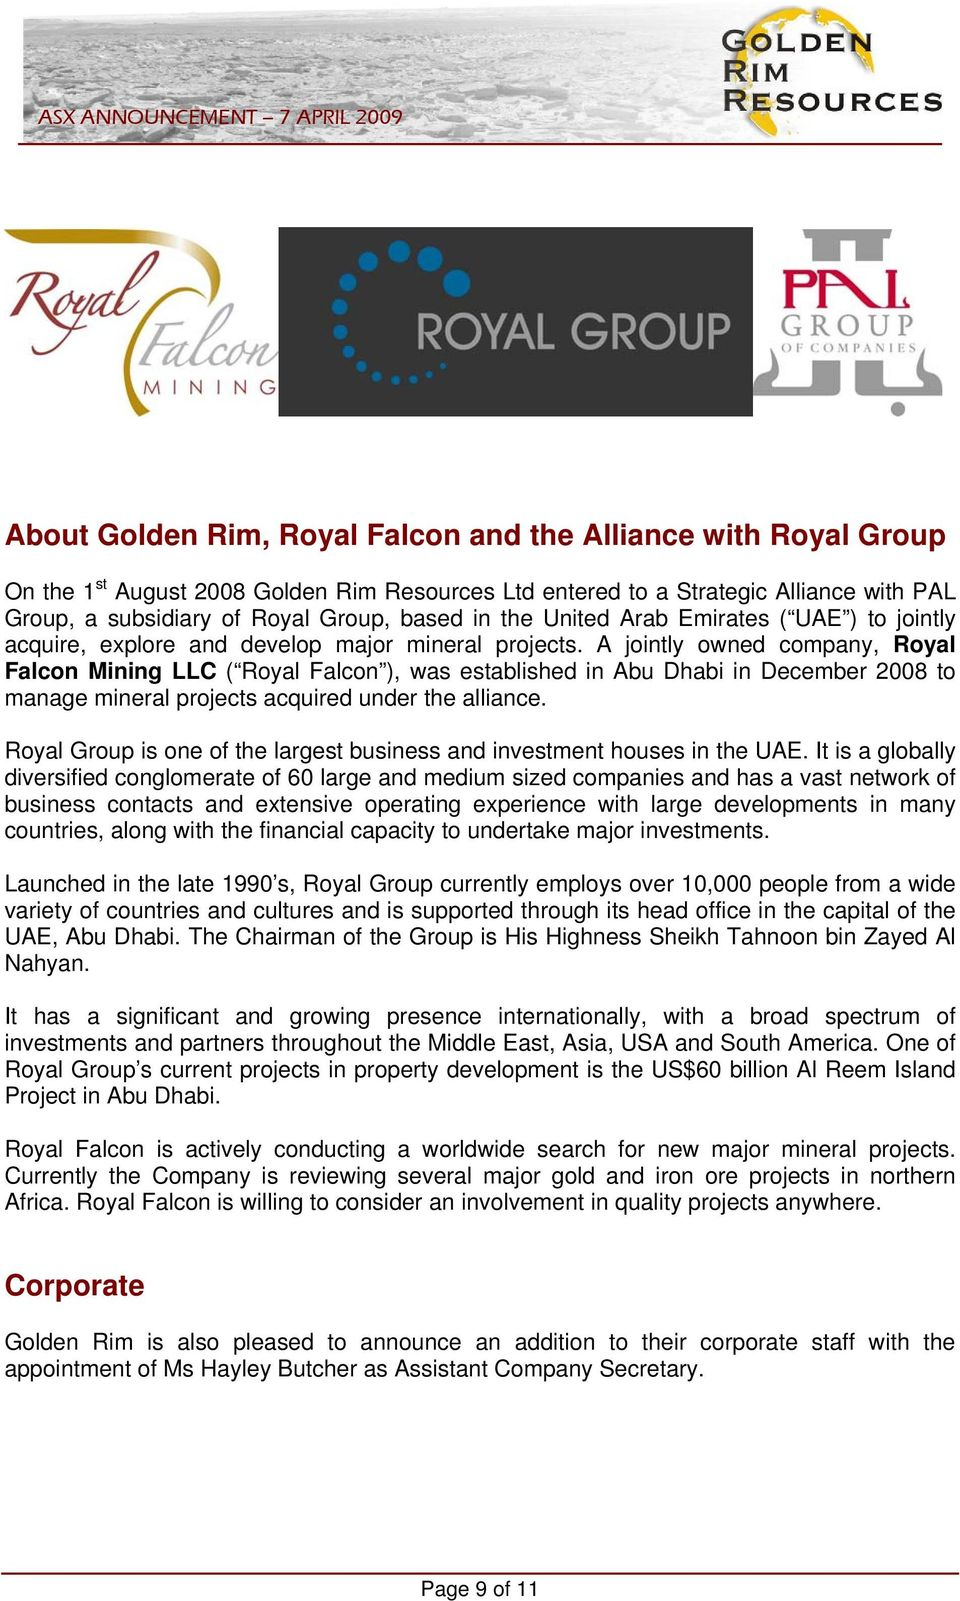 ROYAL FALCON SIGNS JOINT VENTURE ON LARGE GOLD COPPER